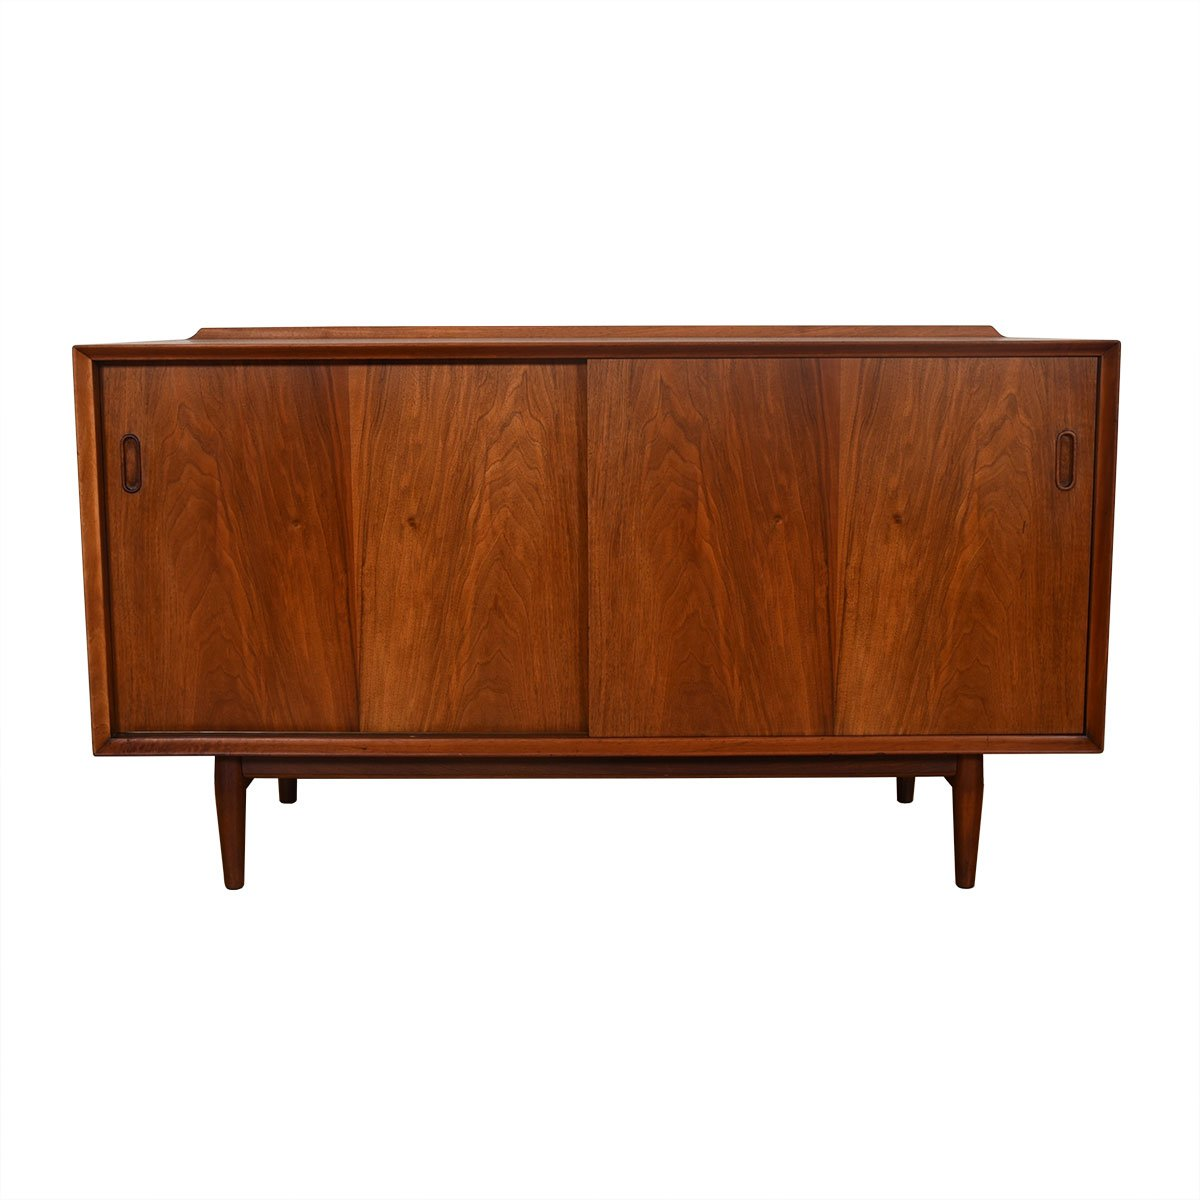 54″ Walnut Danish Modern Sliding Door Sideboard by Arne Vodder.